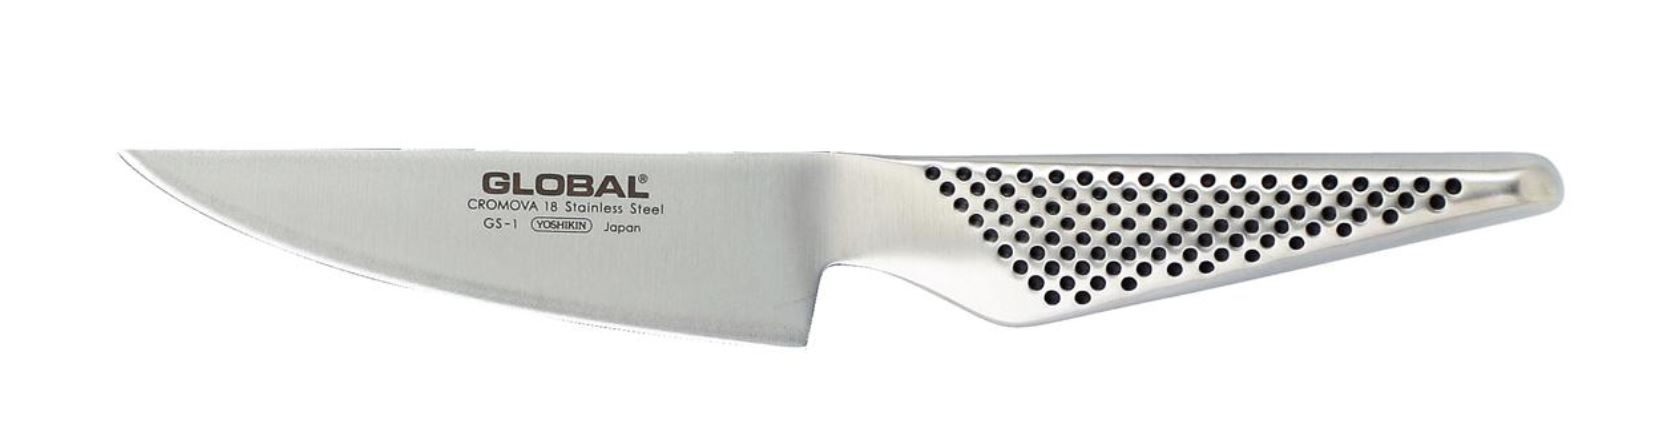 "Global GS1 4.25"" Kitchen Knife (Online Only)"